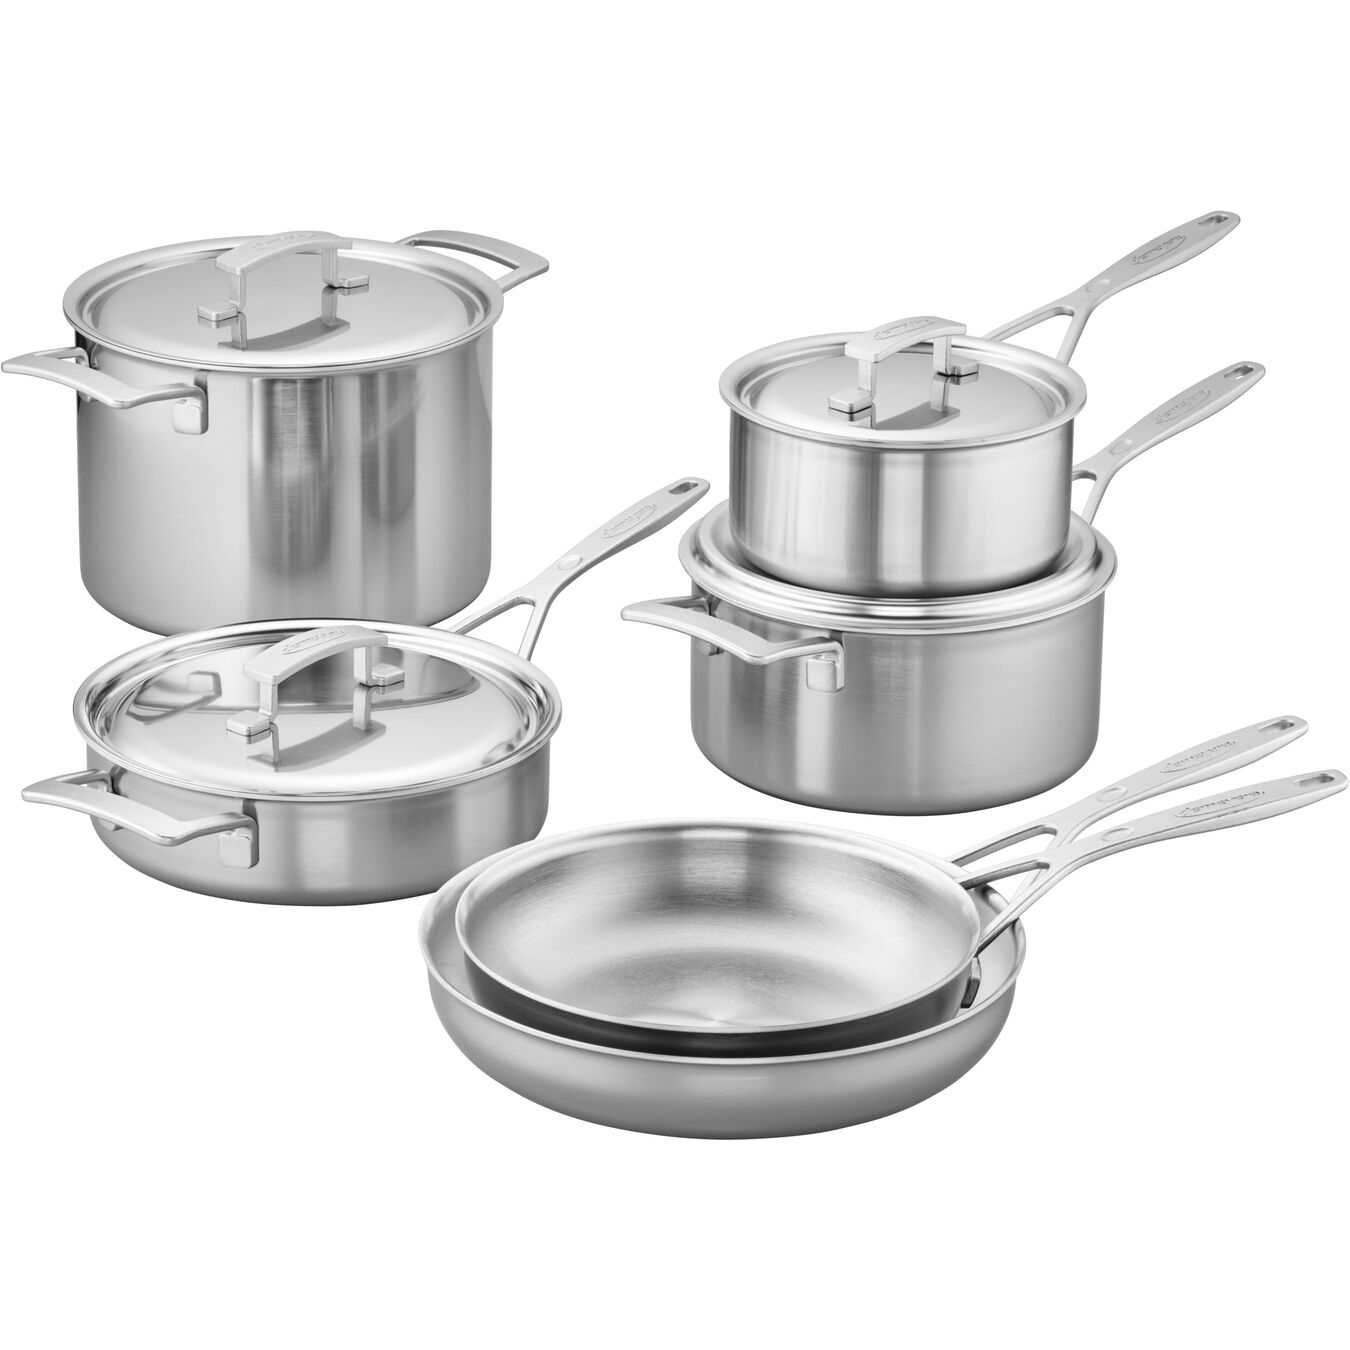 10-pc, Stainless Steel Cookware Set,,large 1